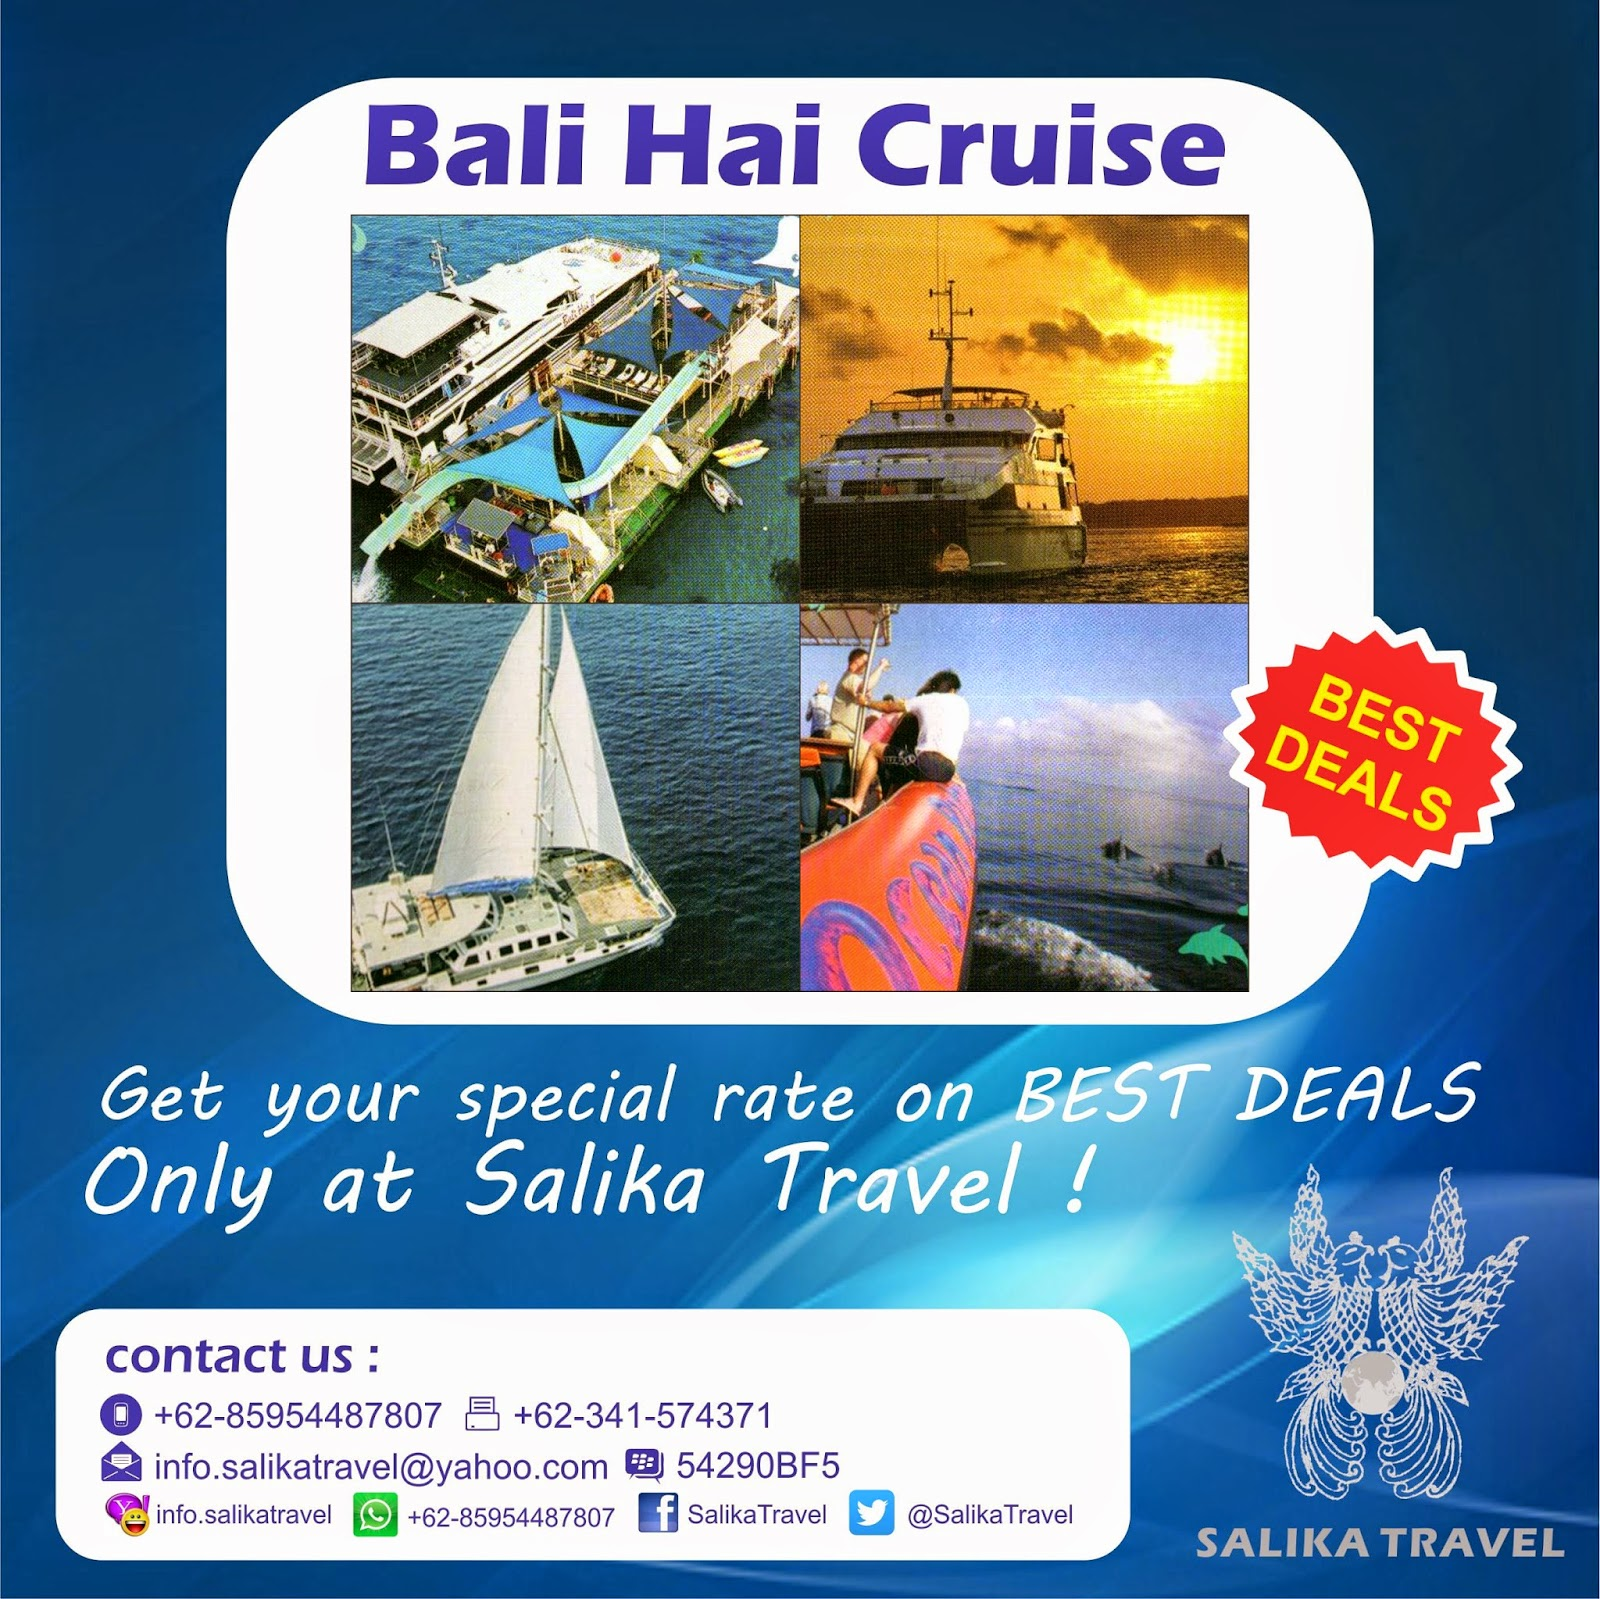 Bali Hai Cruise - Salika Travel